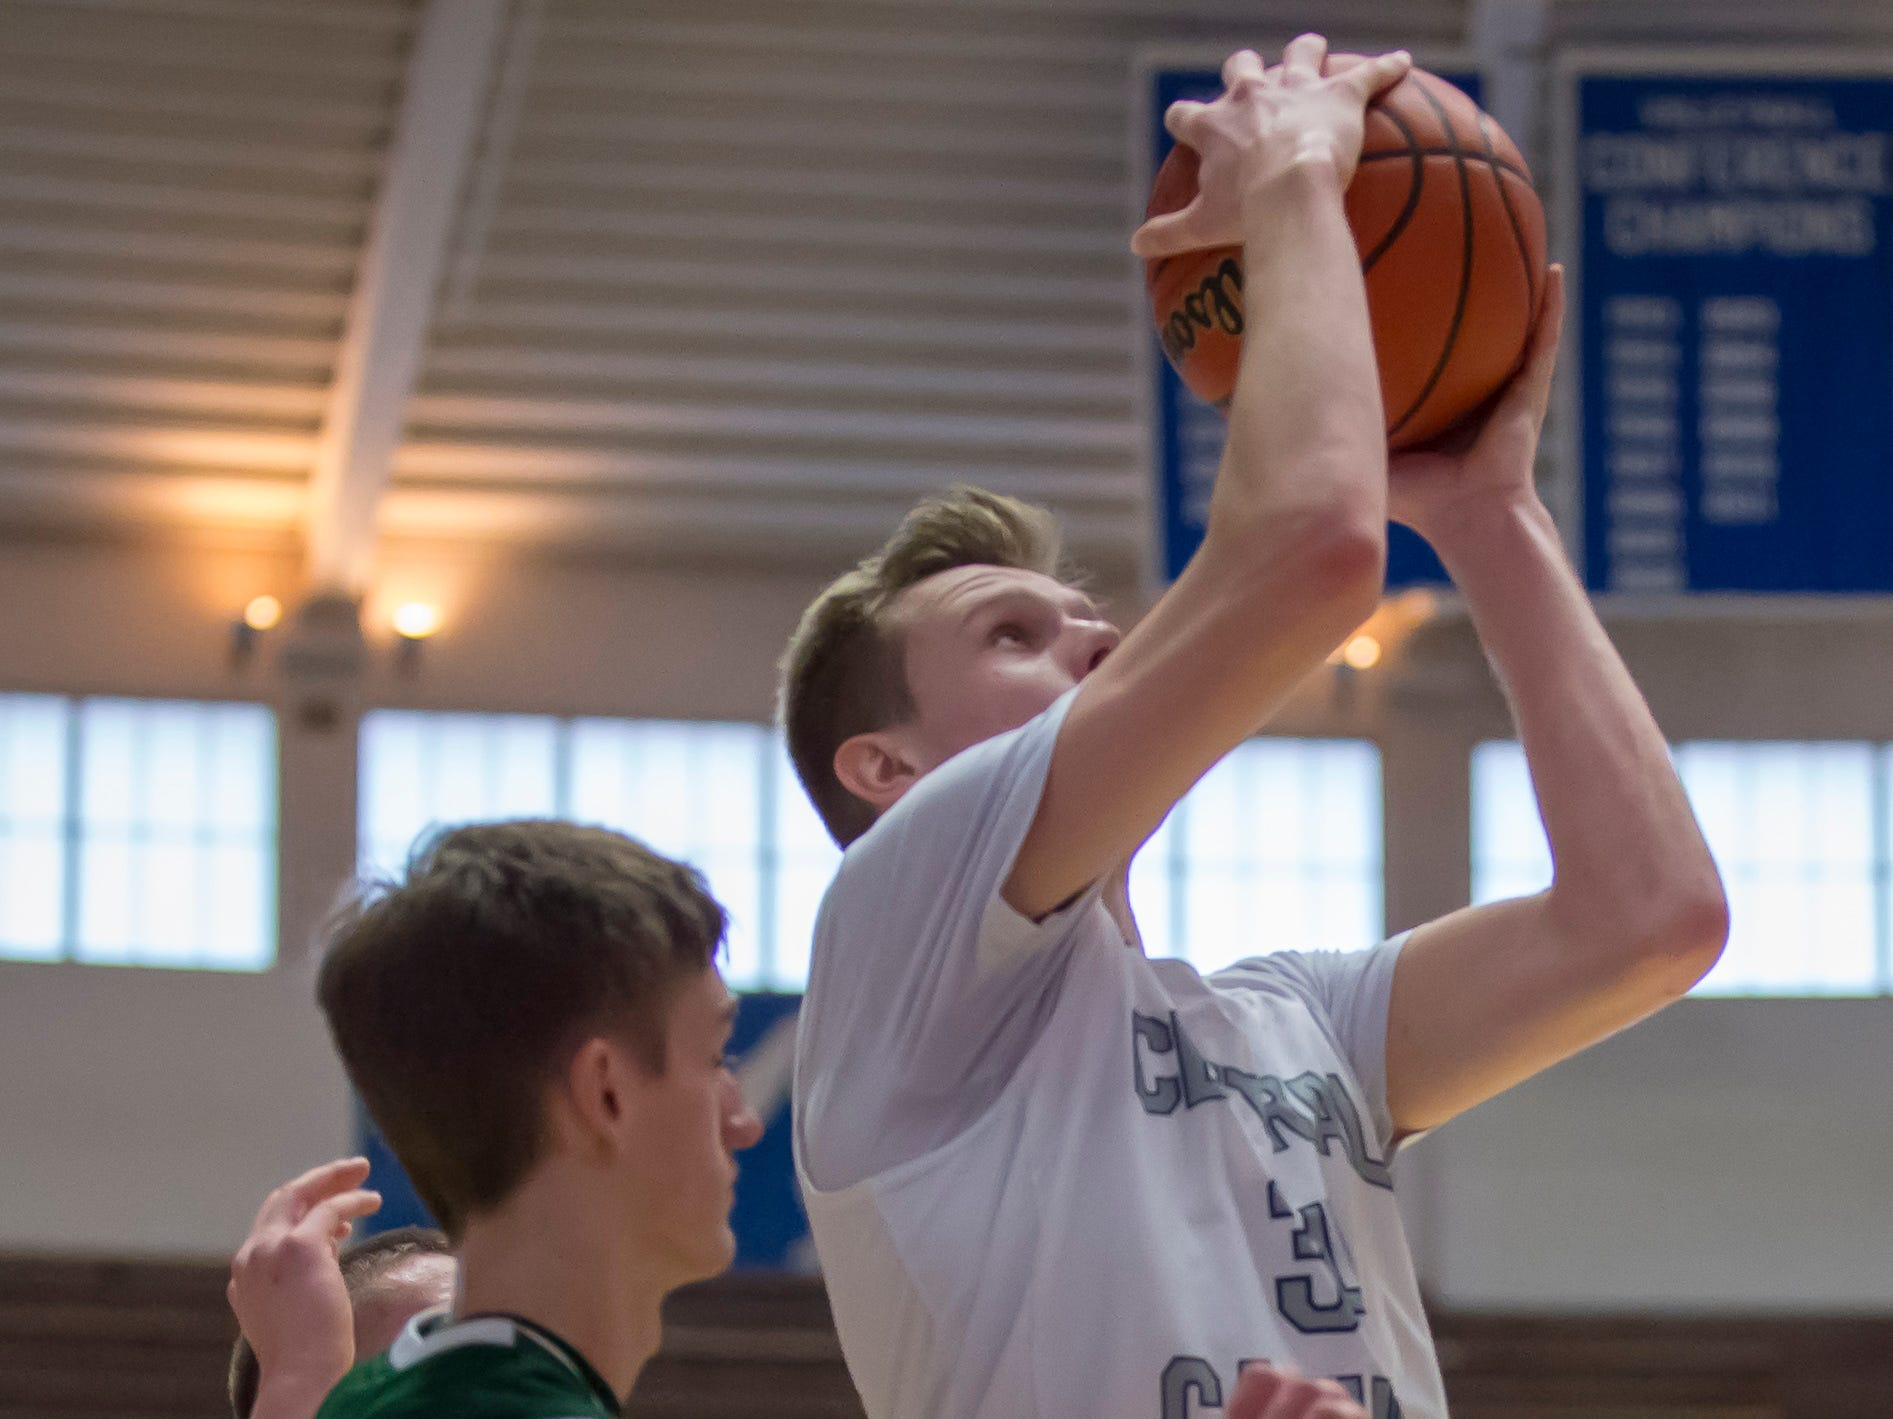 Action from the first round of the Regional between Central Catholic and Randolph Southern from Case Arena on 3/9/19 - Carson Barrett